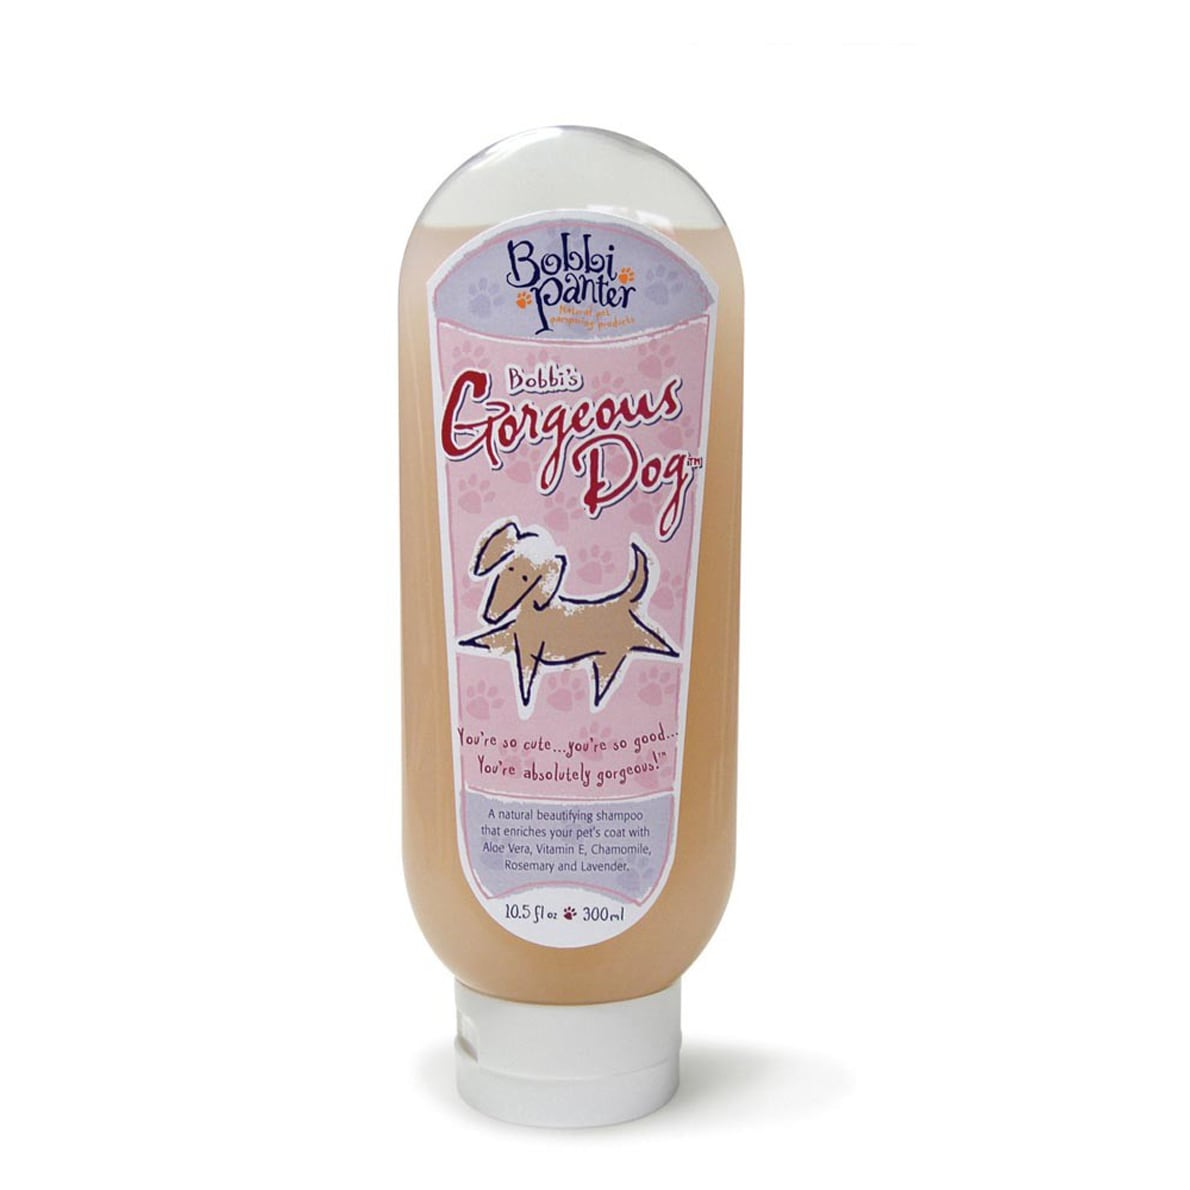 Bobbi Panter Gorgeous Dog 10-ounce Shampoo with Peach Fragrance